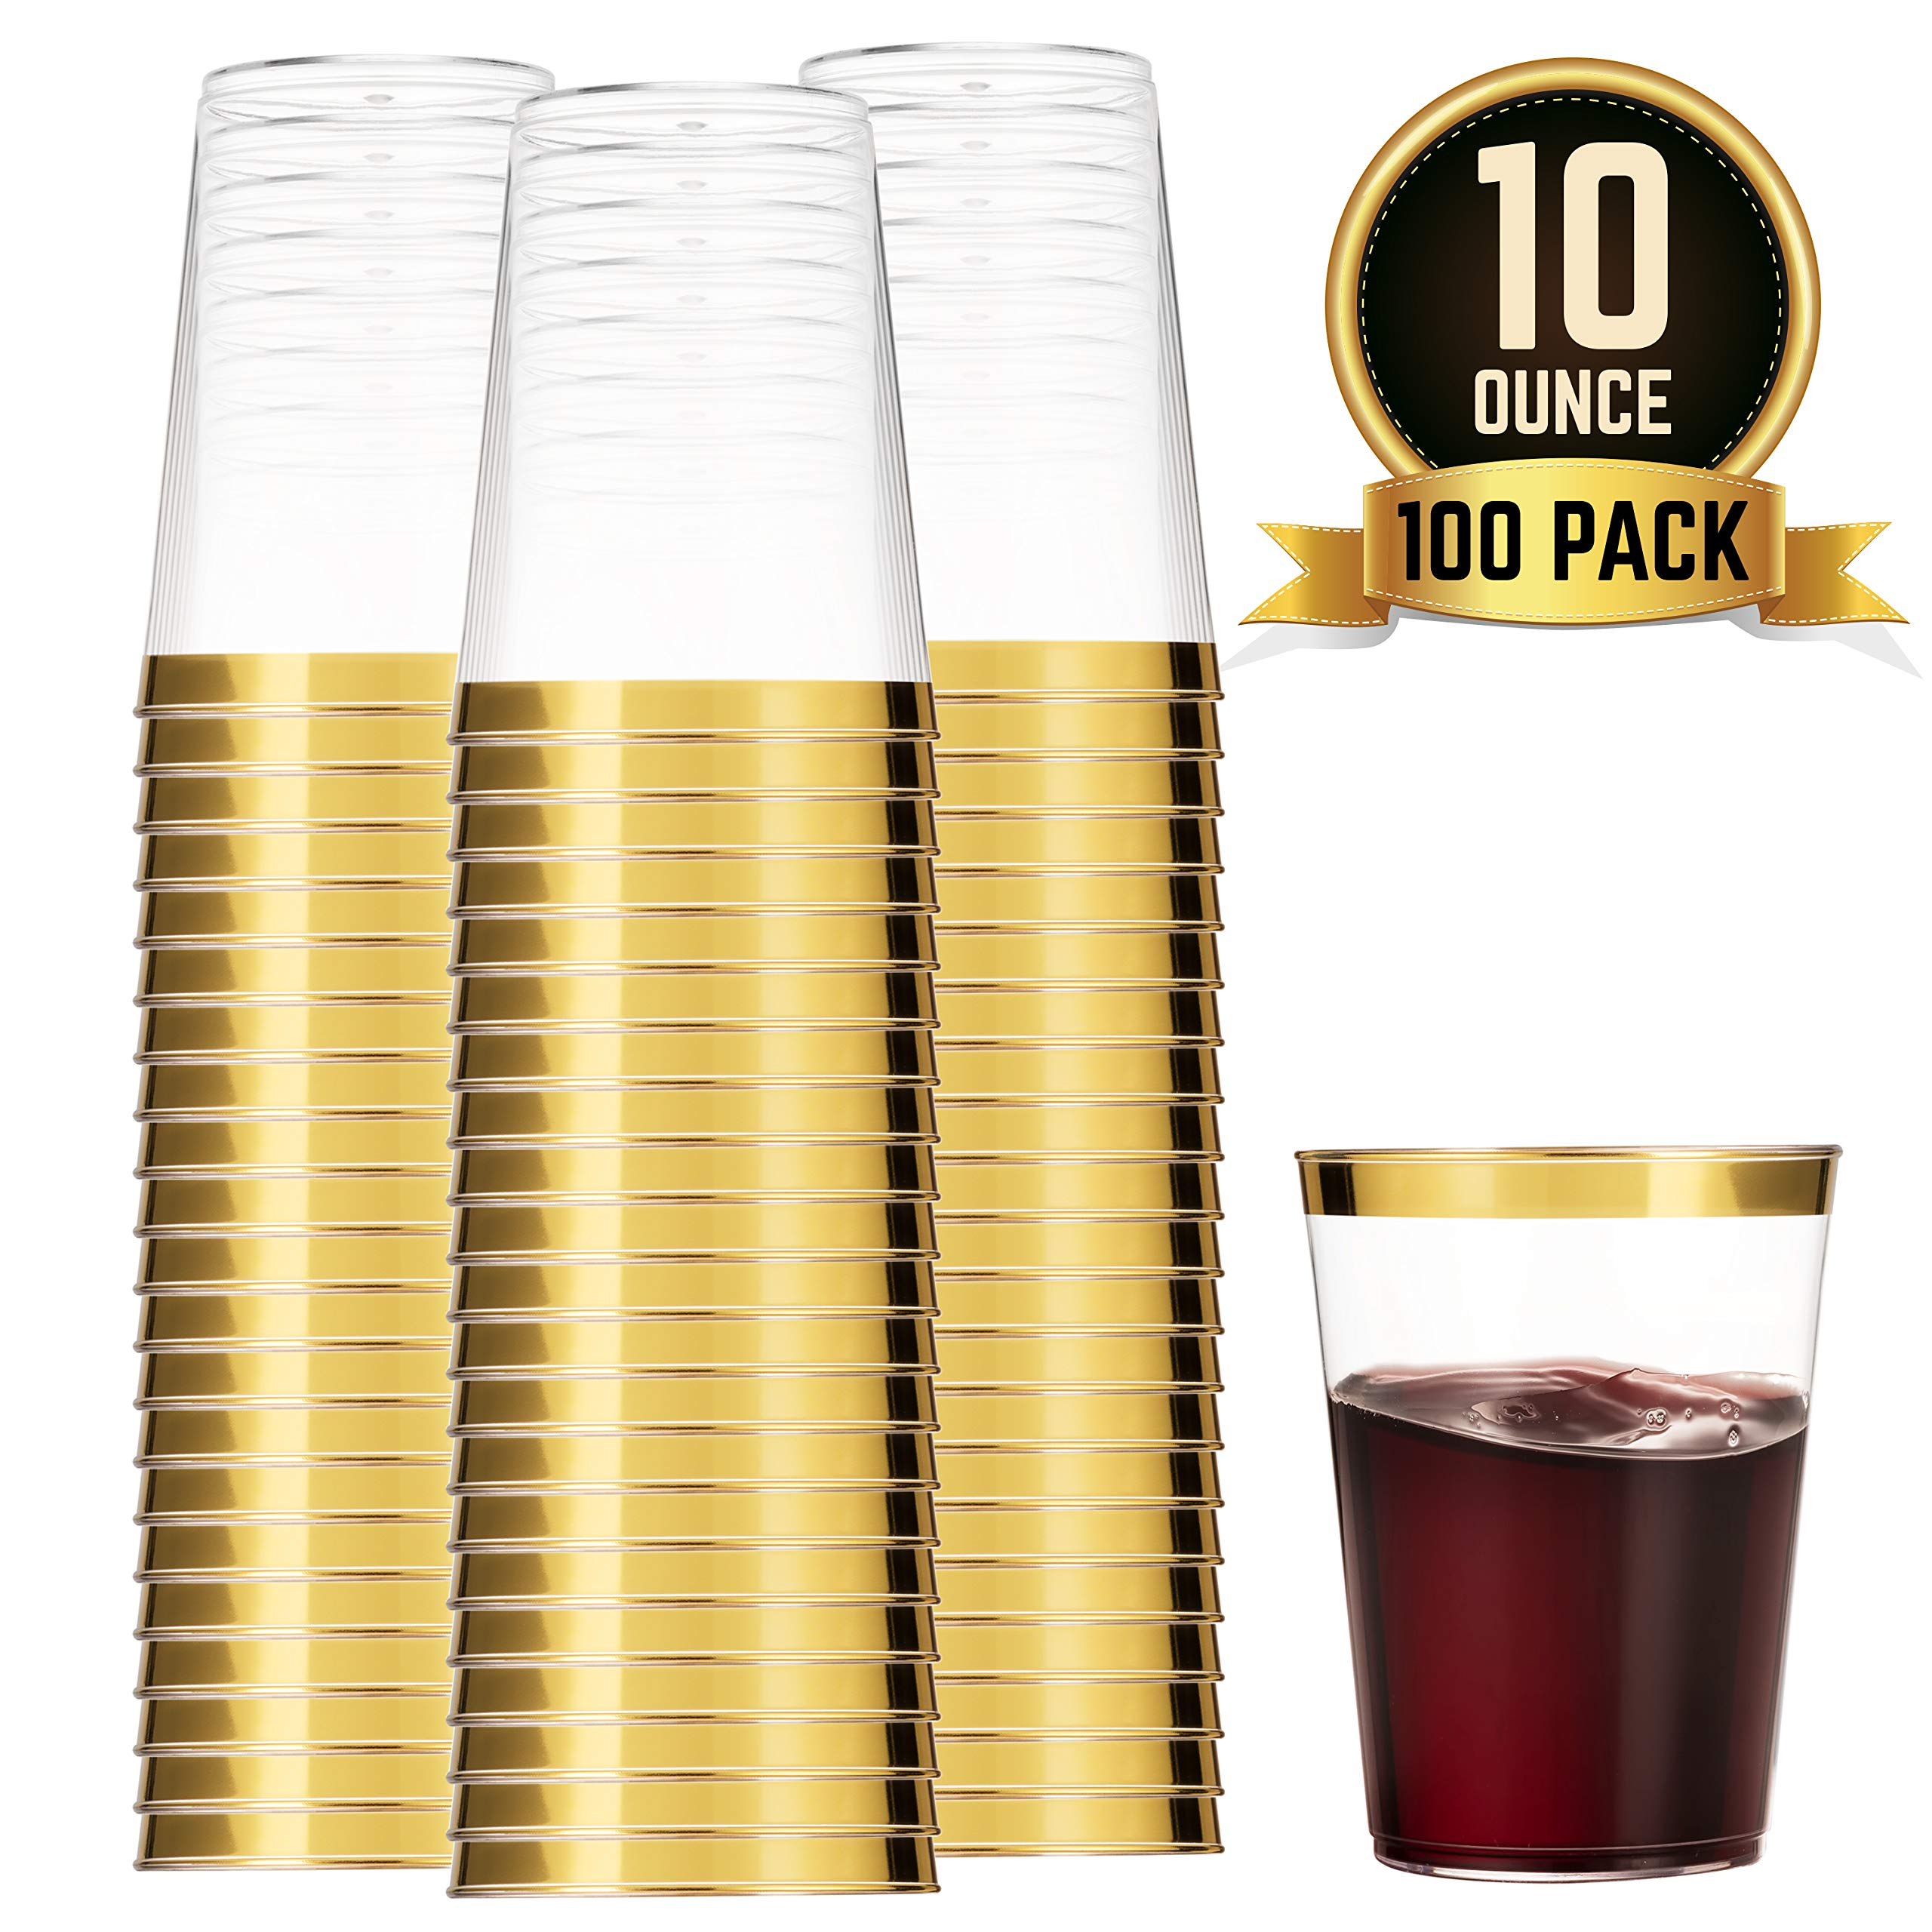 100 Gold Plastic Cups 10 Oz Clear Plastic Cups Tumblers Gold Rimmed Cups Fancy Disposable Wedding Cups Elegant Party Cups with Gold Rim